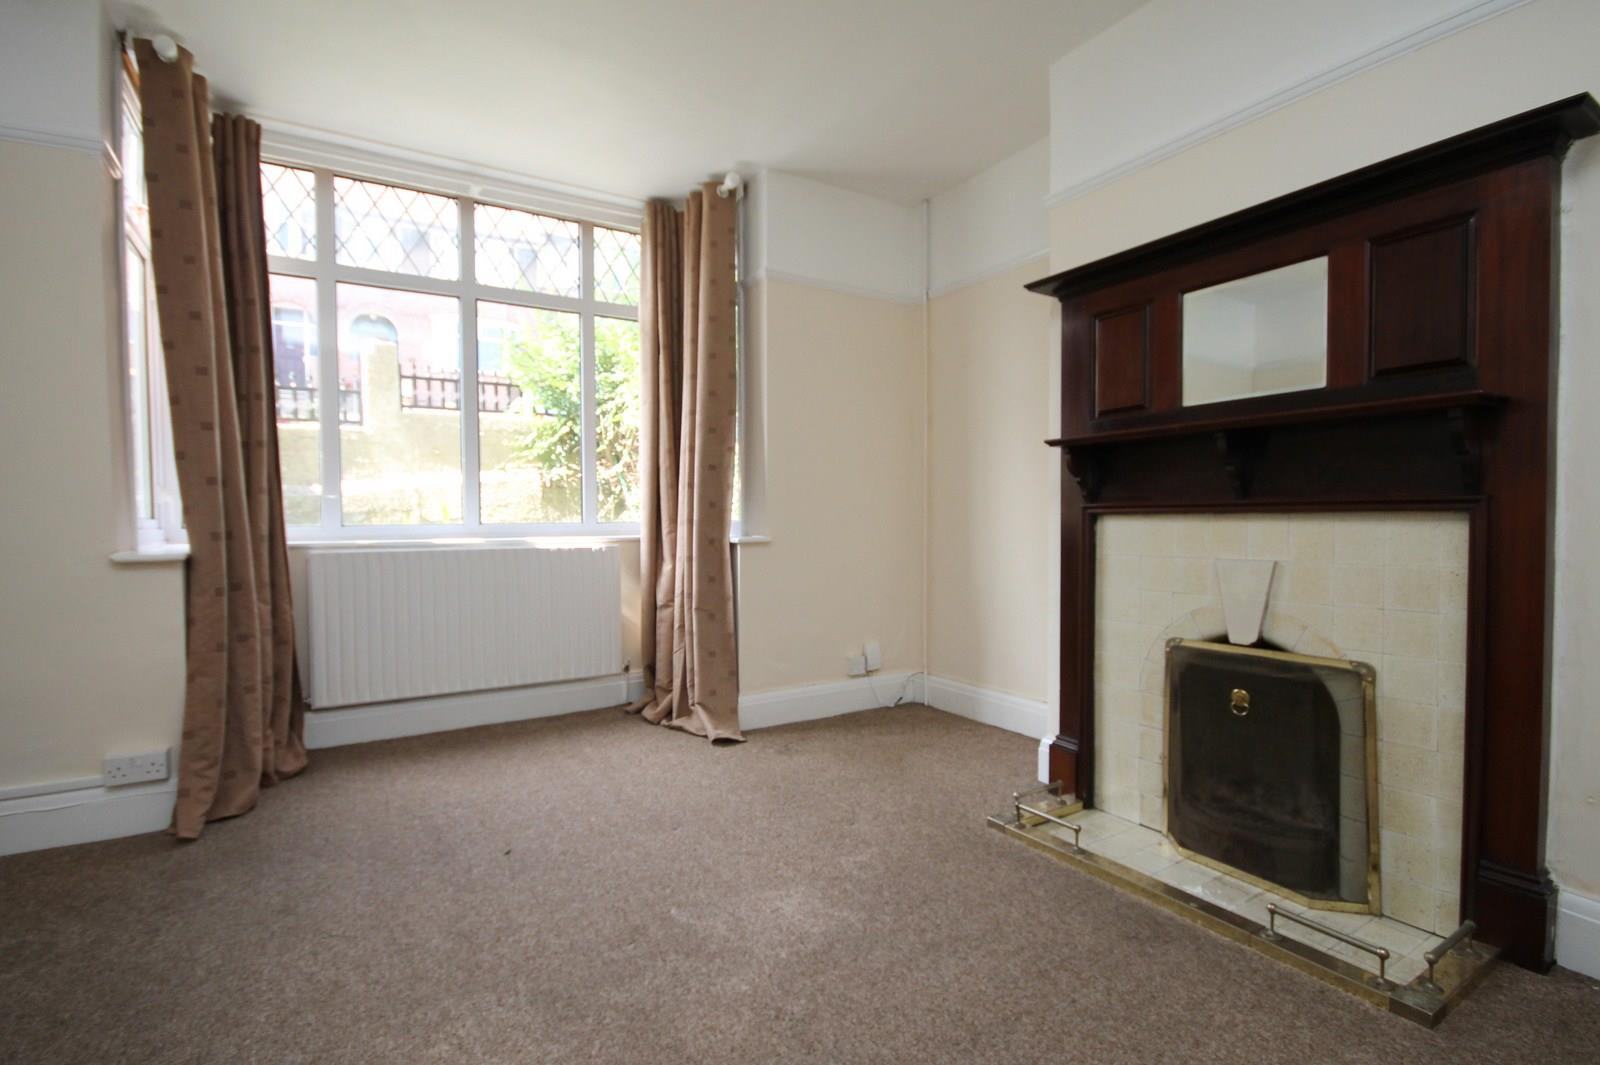 3 bed house to rent in Ashley Down Road, Bristol  - Property Image 7